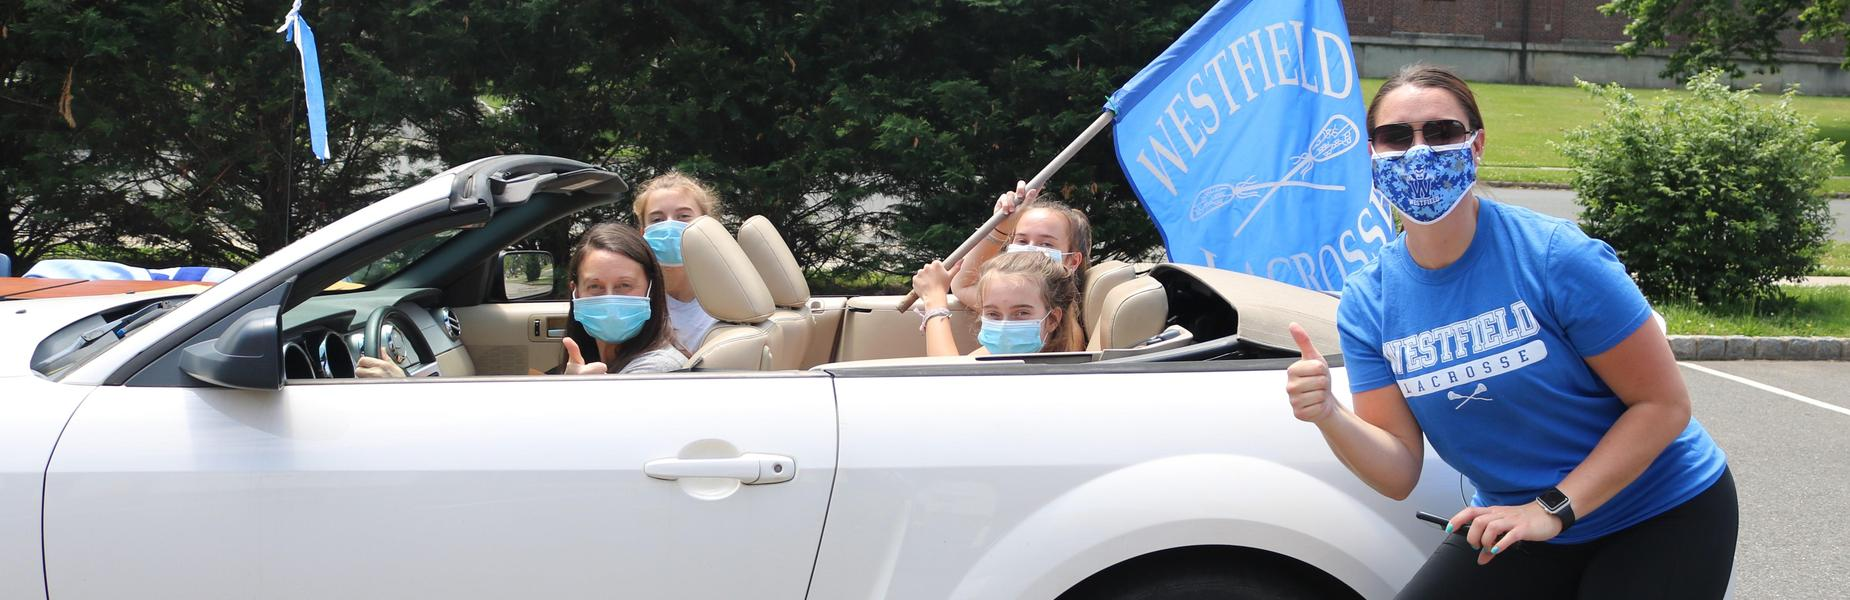 Photo of WHS lacrosse coach next to car with players picking up varsity letters during COVID-19 restrictions.